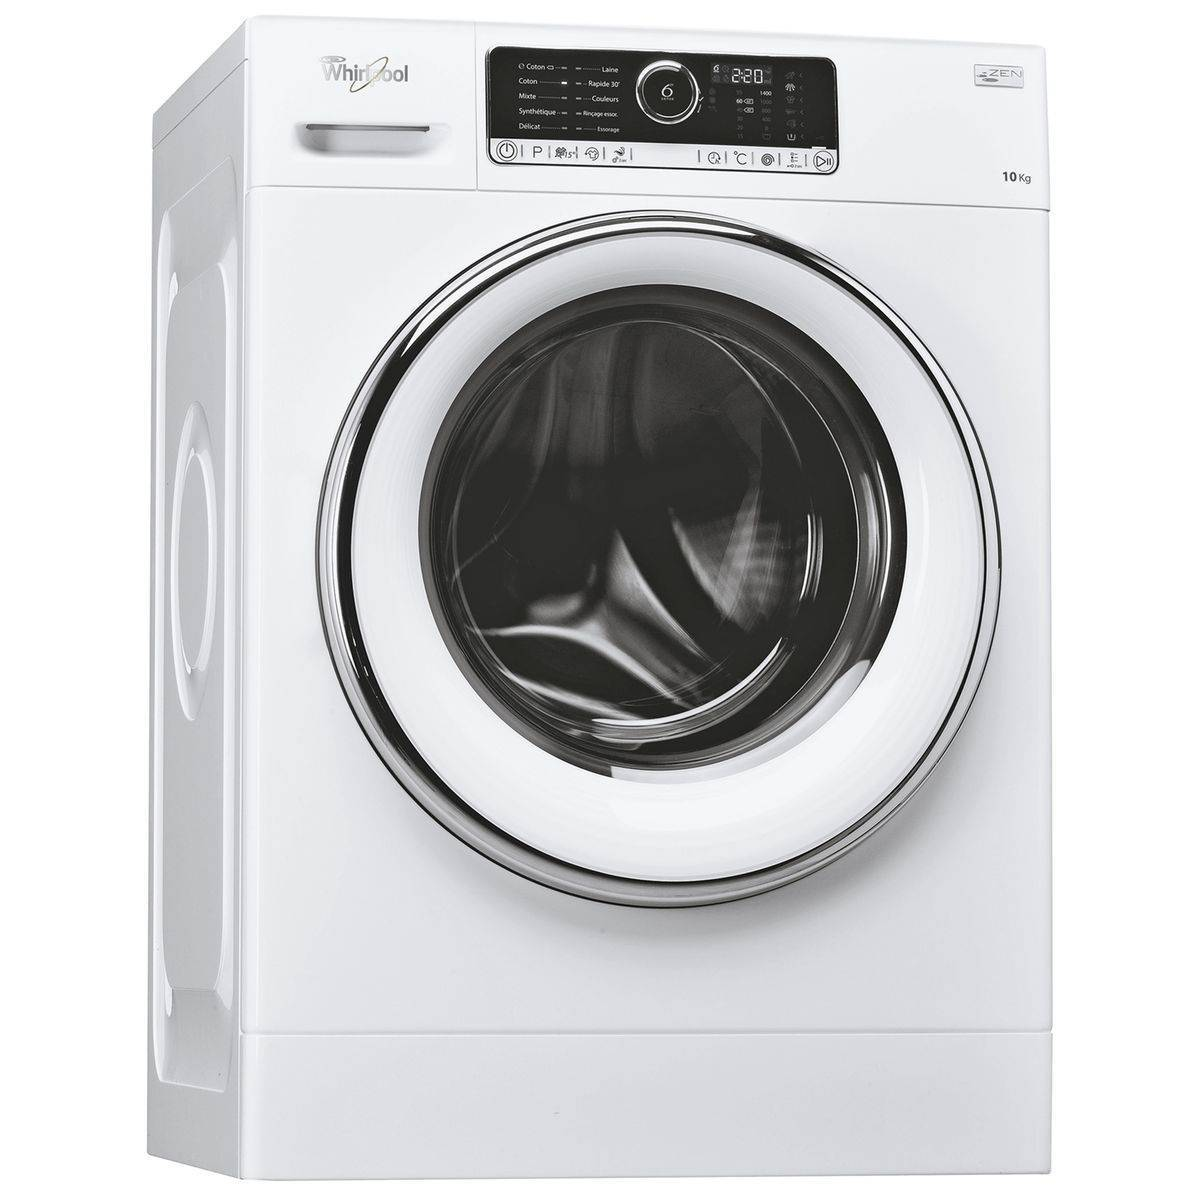 Whirlpool Lave-linge frontal Supreme Care FSCR10427 - WHIRLPOOL